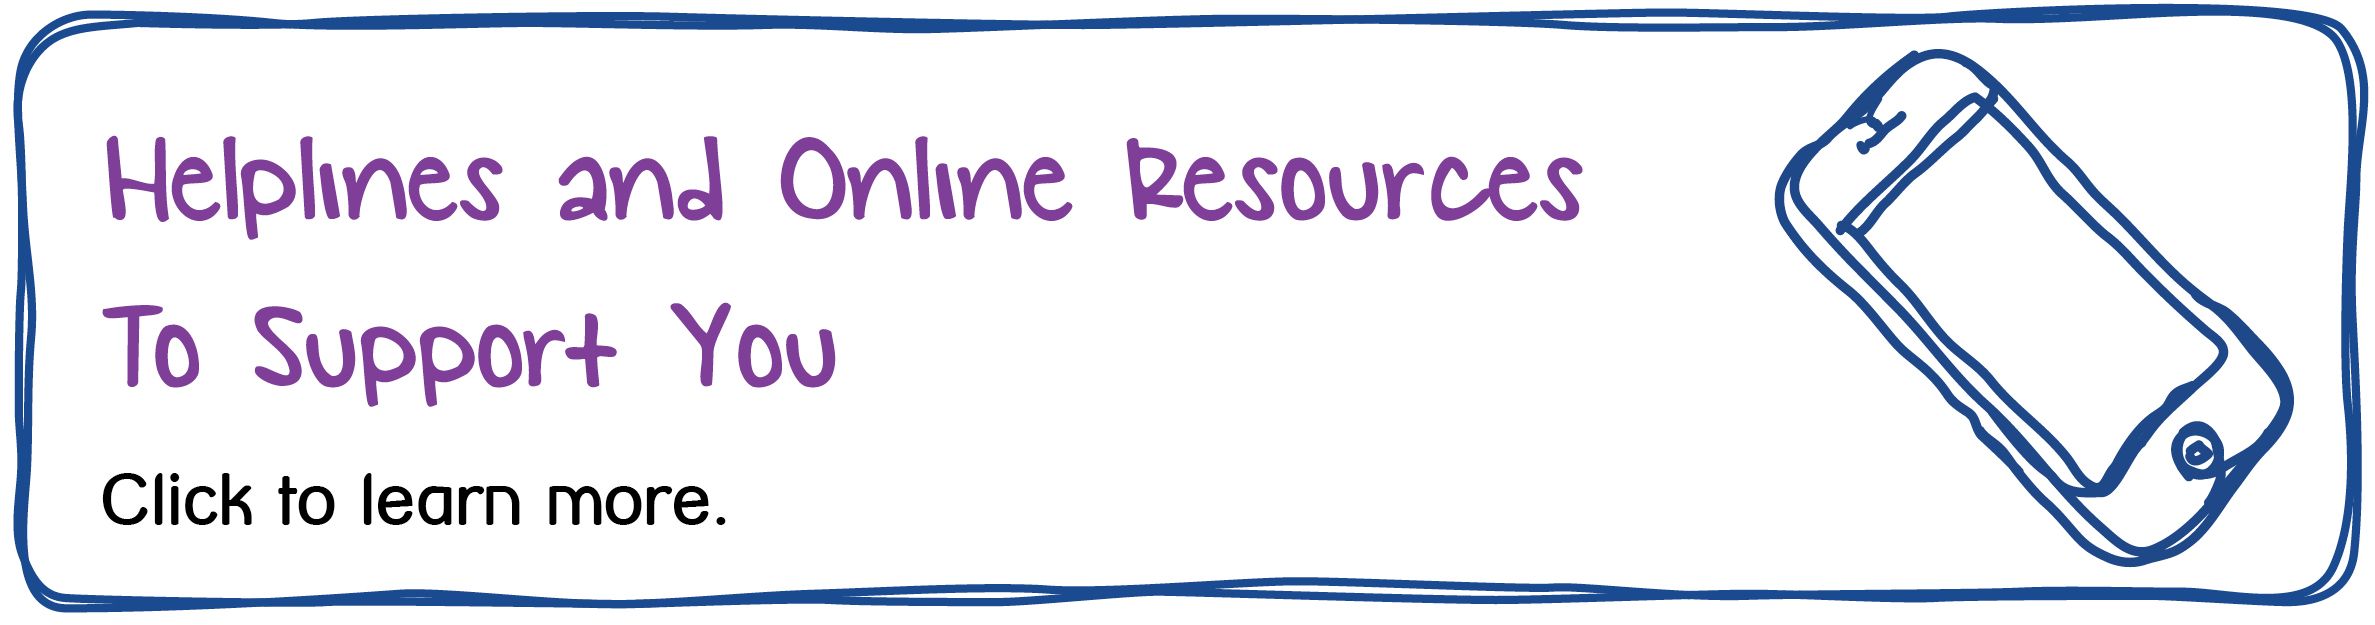 Helplines and Online Resources to Support You. Click to learn more.